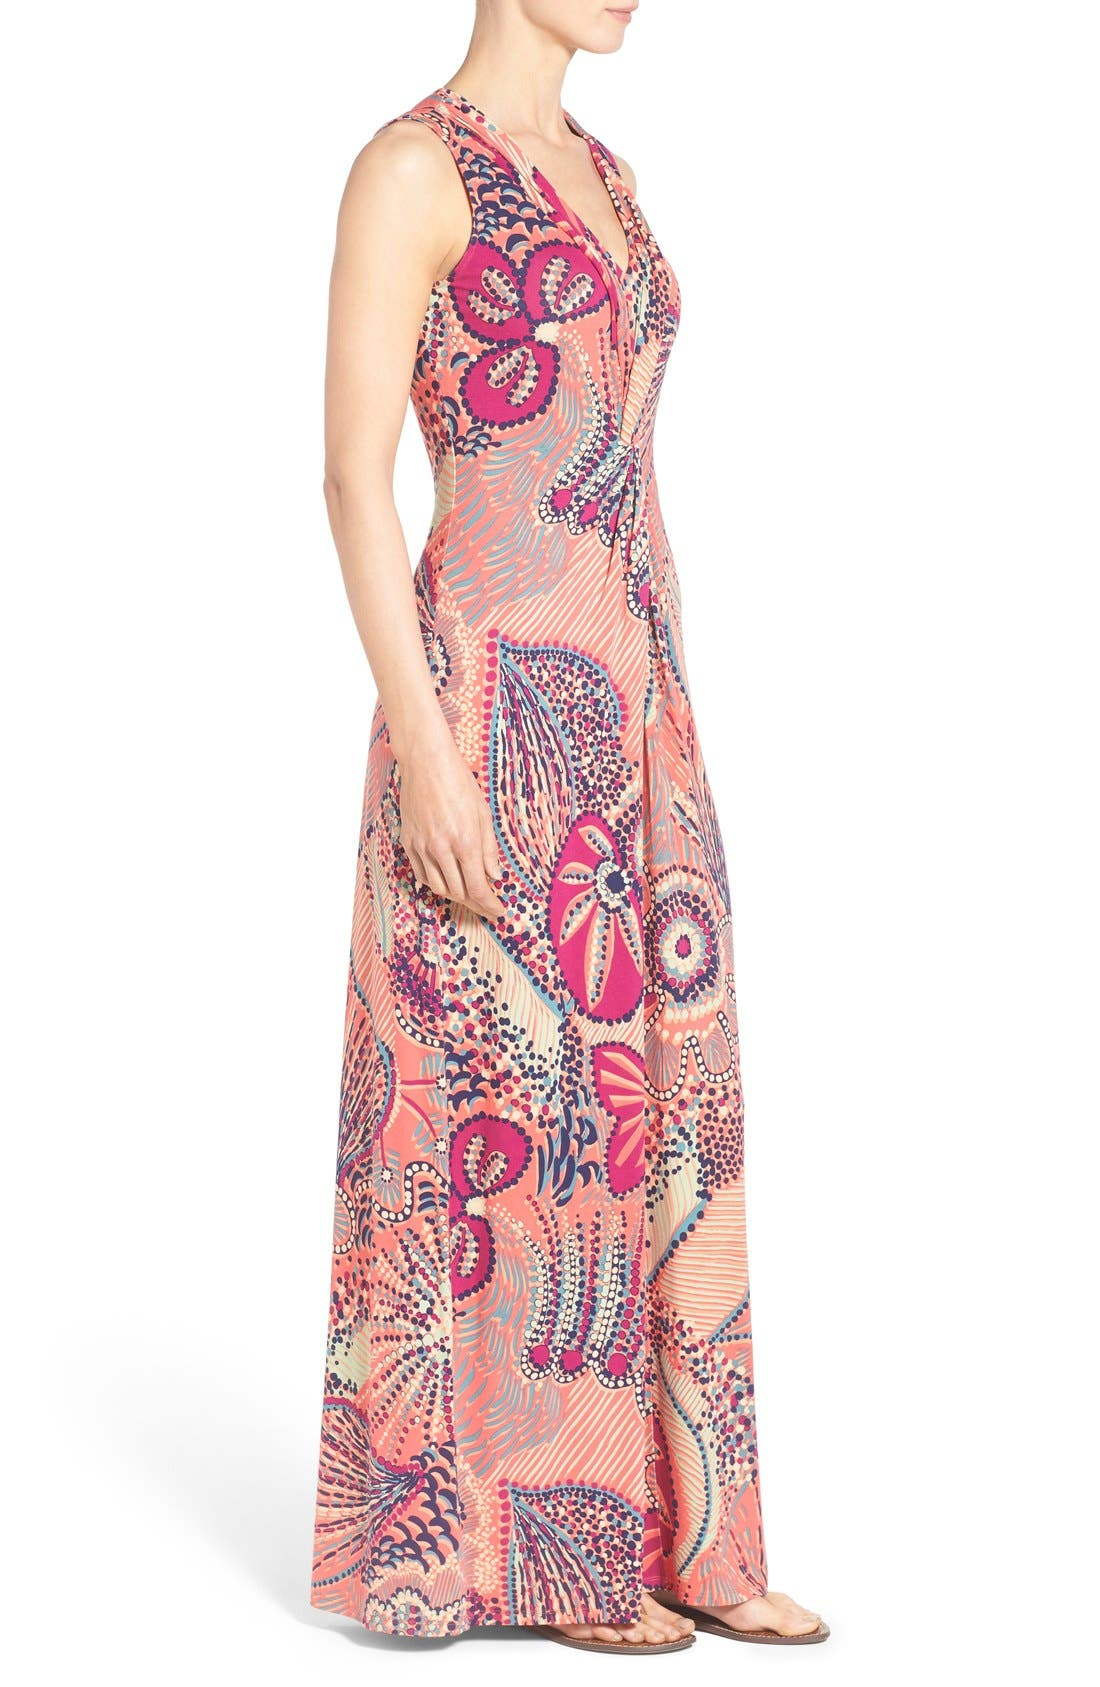 'Carnival Lights' Print V-Neck Maxi Dress,                             Alternate thumbnail 4, color,                             950